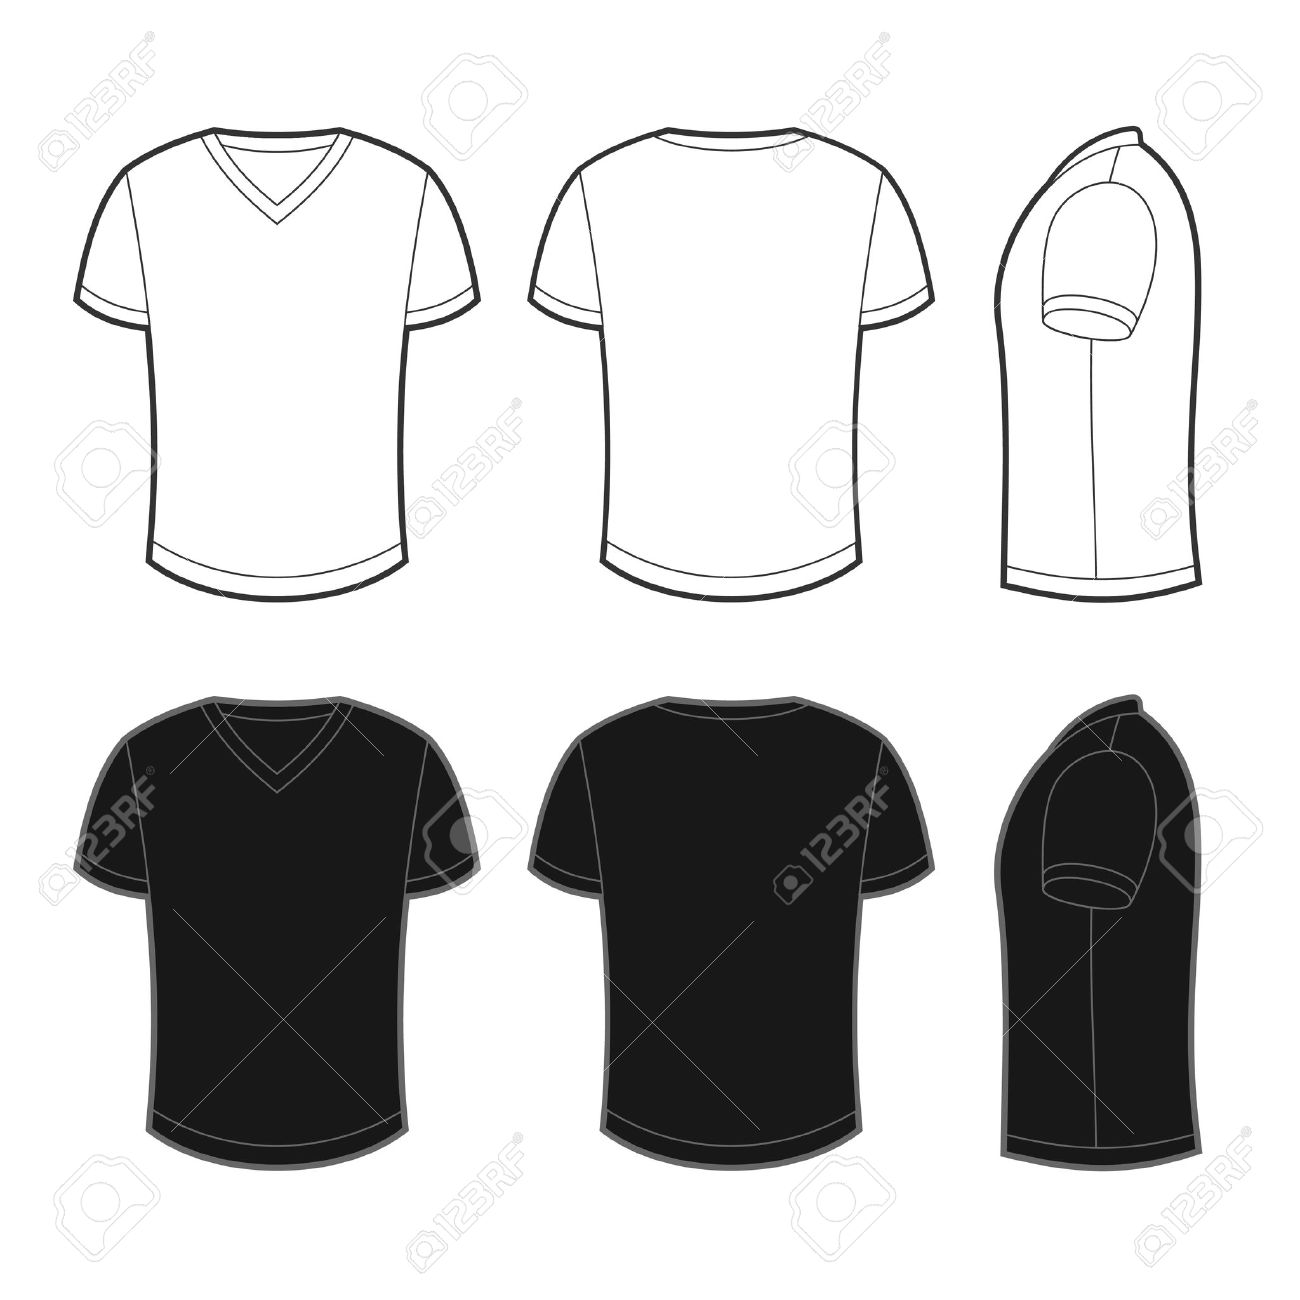 Black t shirt back and front - Front Back And Side Views Of White And Black Blank T Shirt Stock Photo